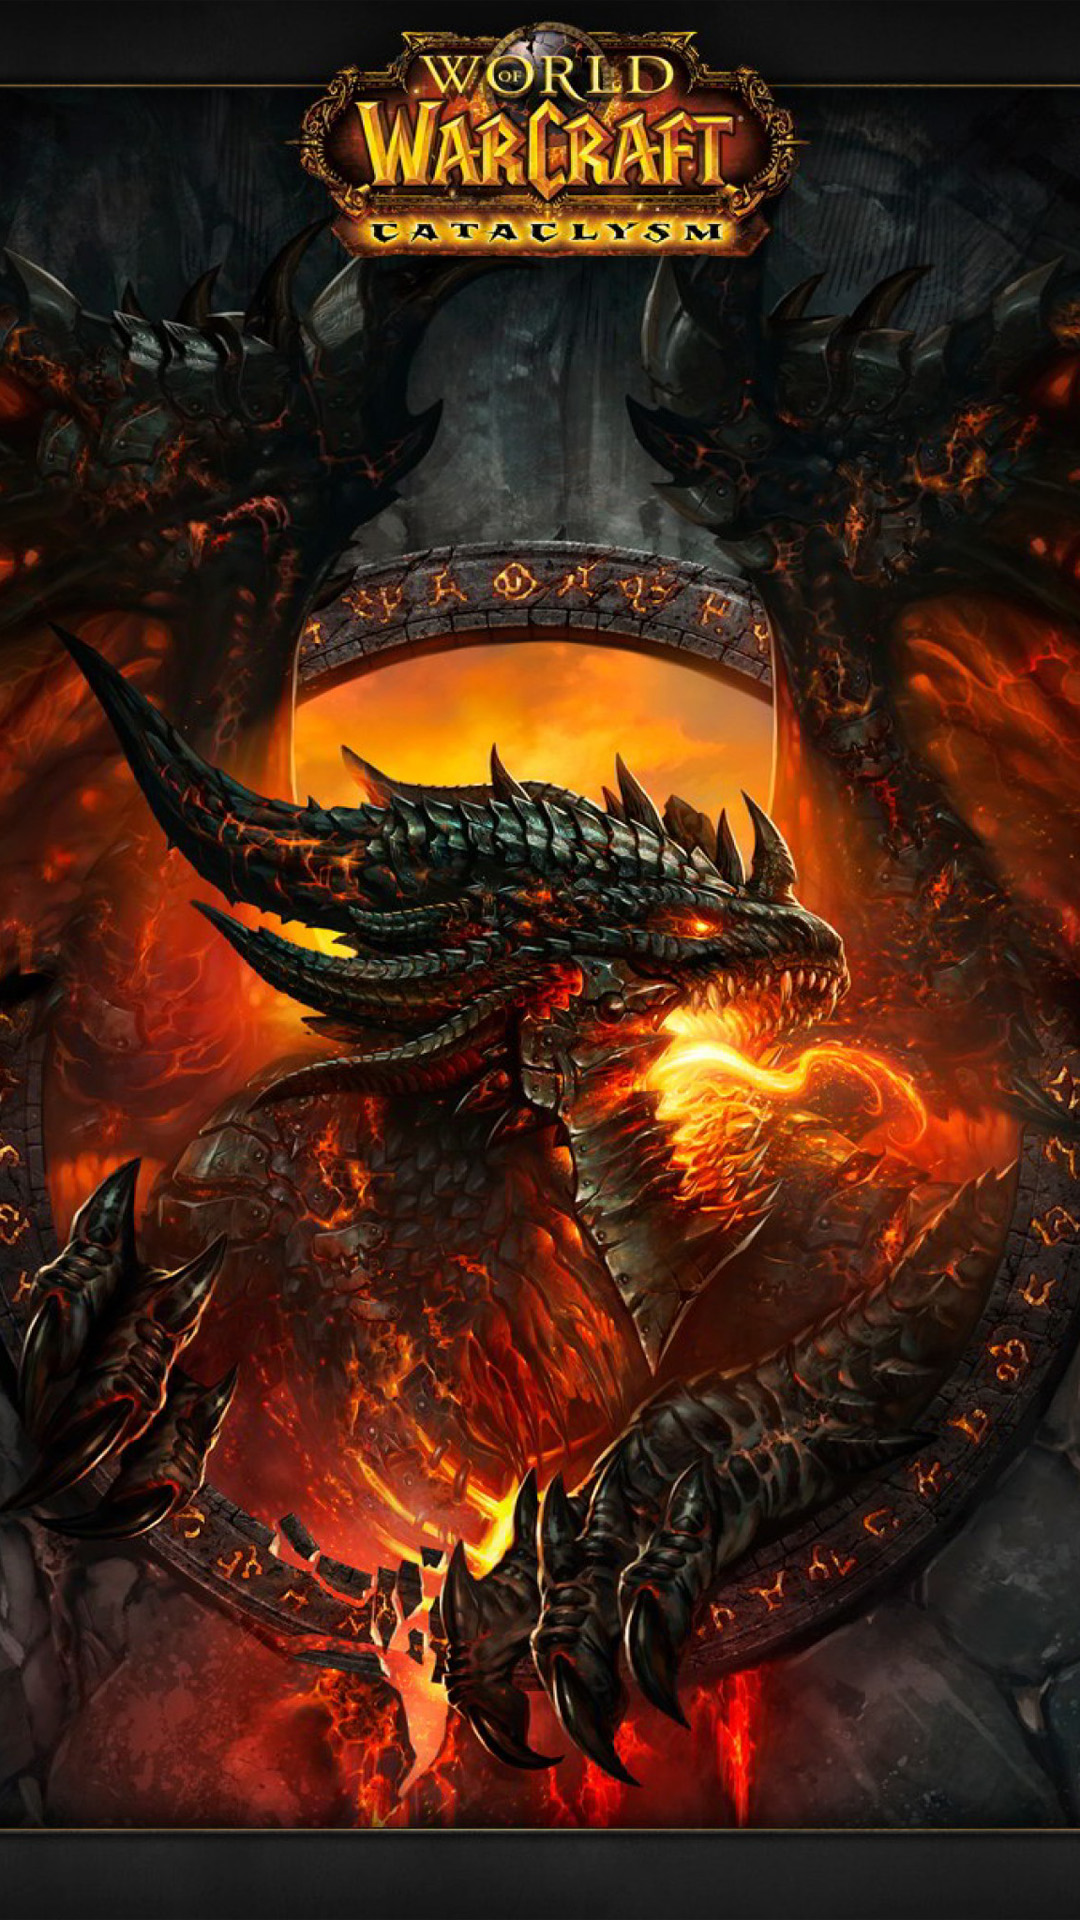 3d Wallpaper For Htc M8 Dragon World Of Warcraft Cataclysm Best Htc One Wallpapers